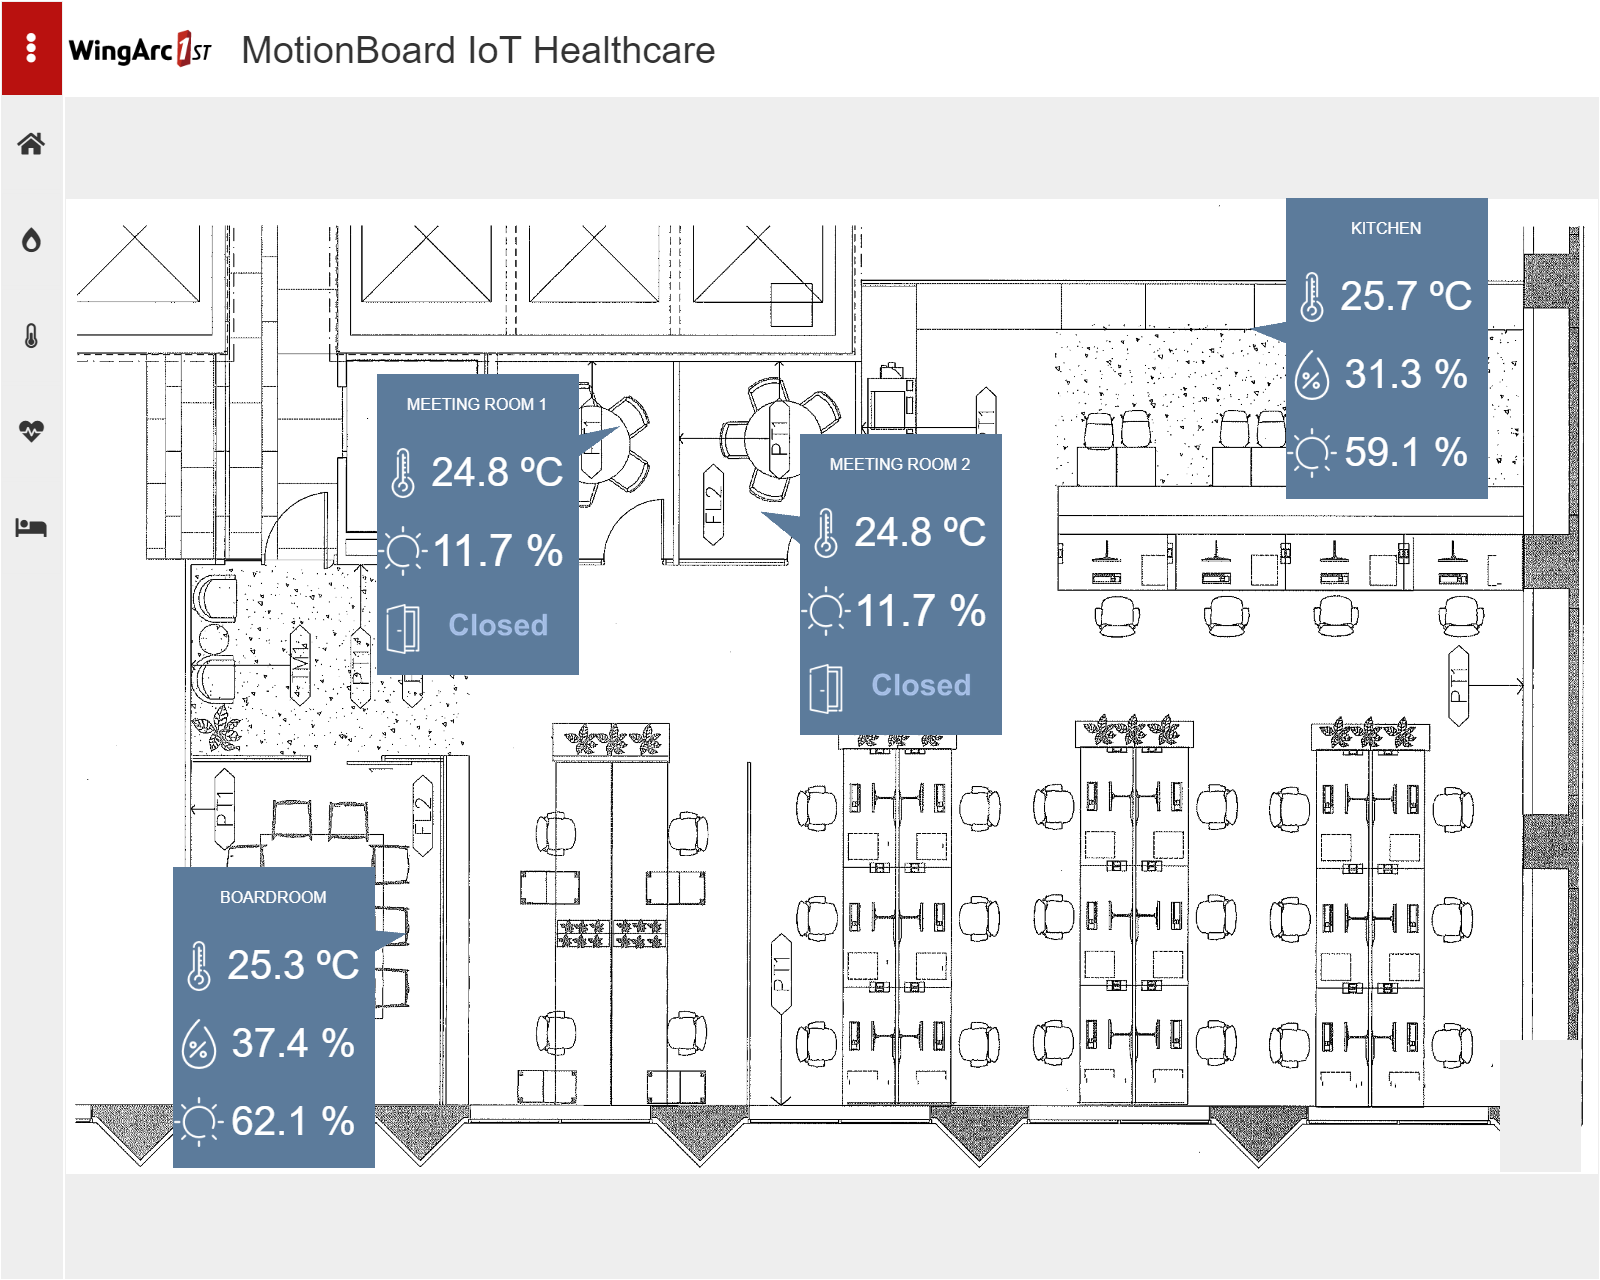 IoT Healthcare Business Intelligence Demo